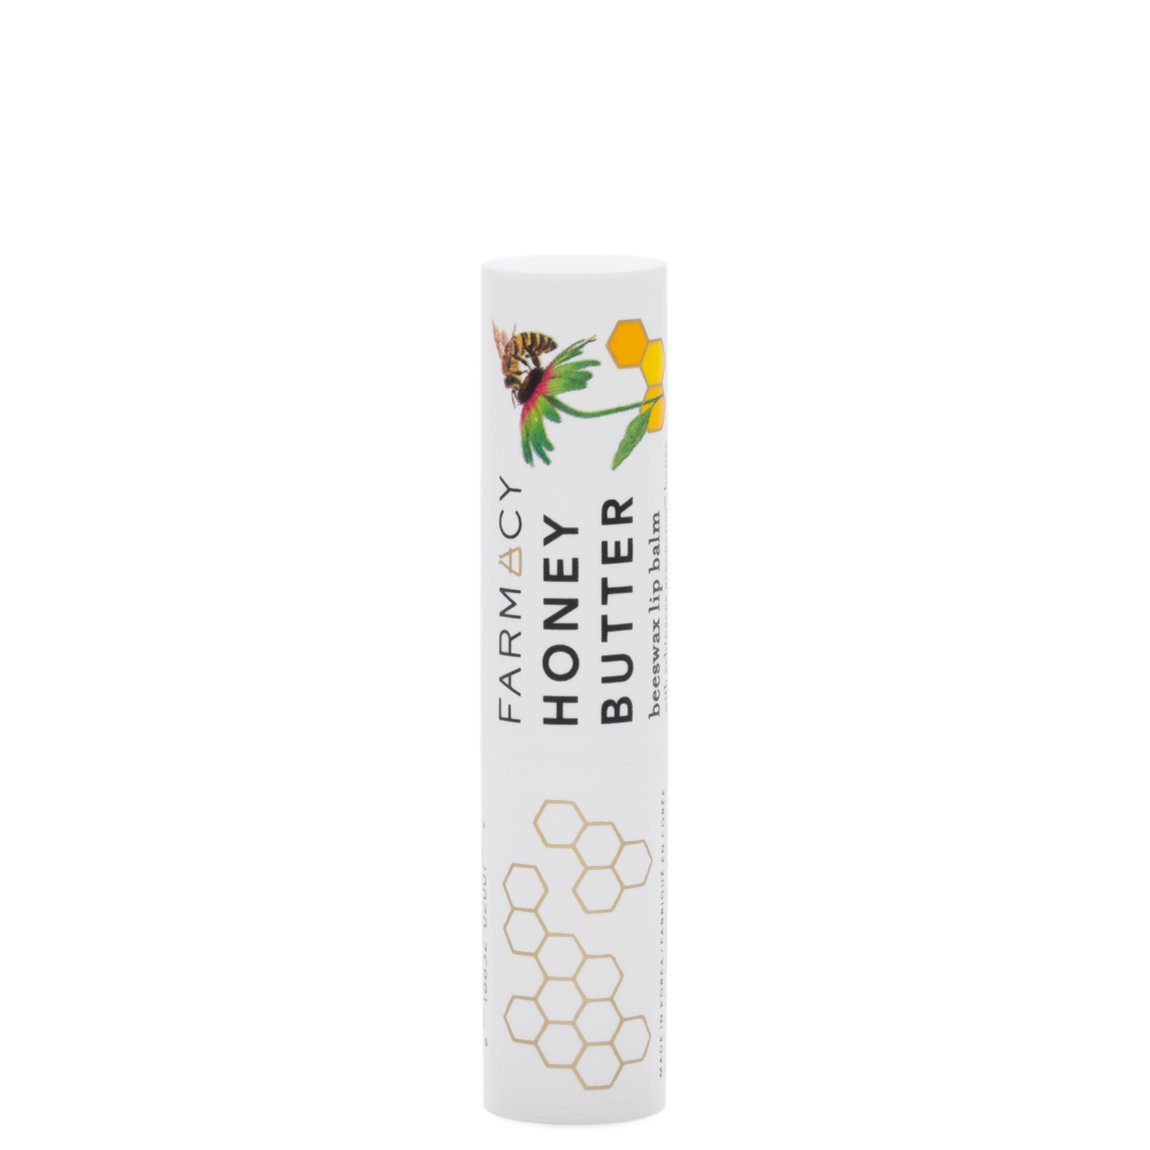 Farmacy Honey Butter Beeswax Lip Balm product smear.